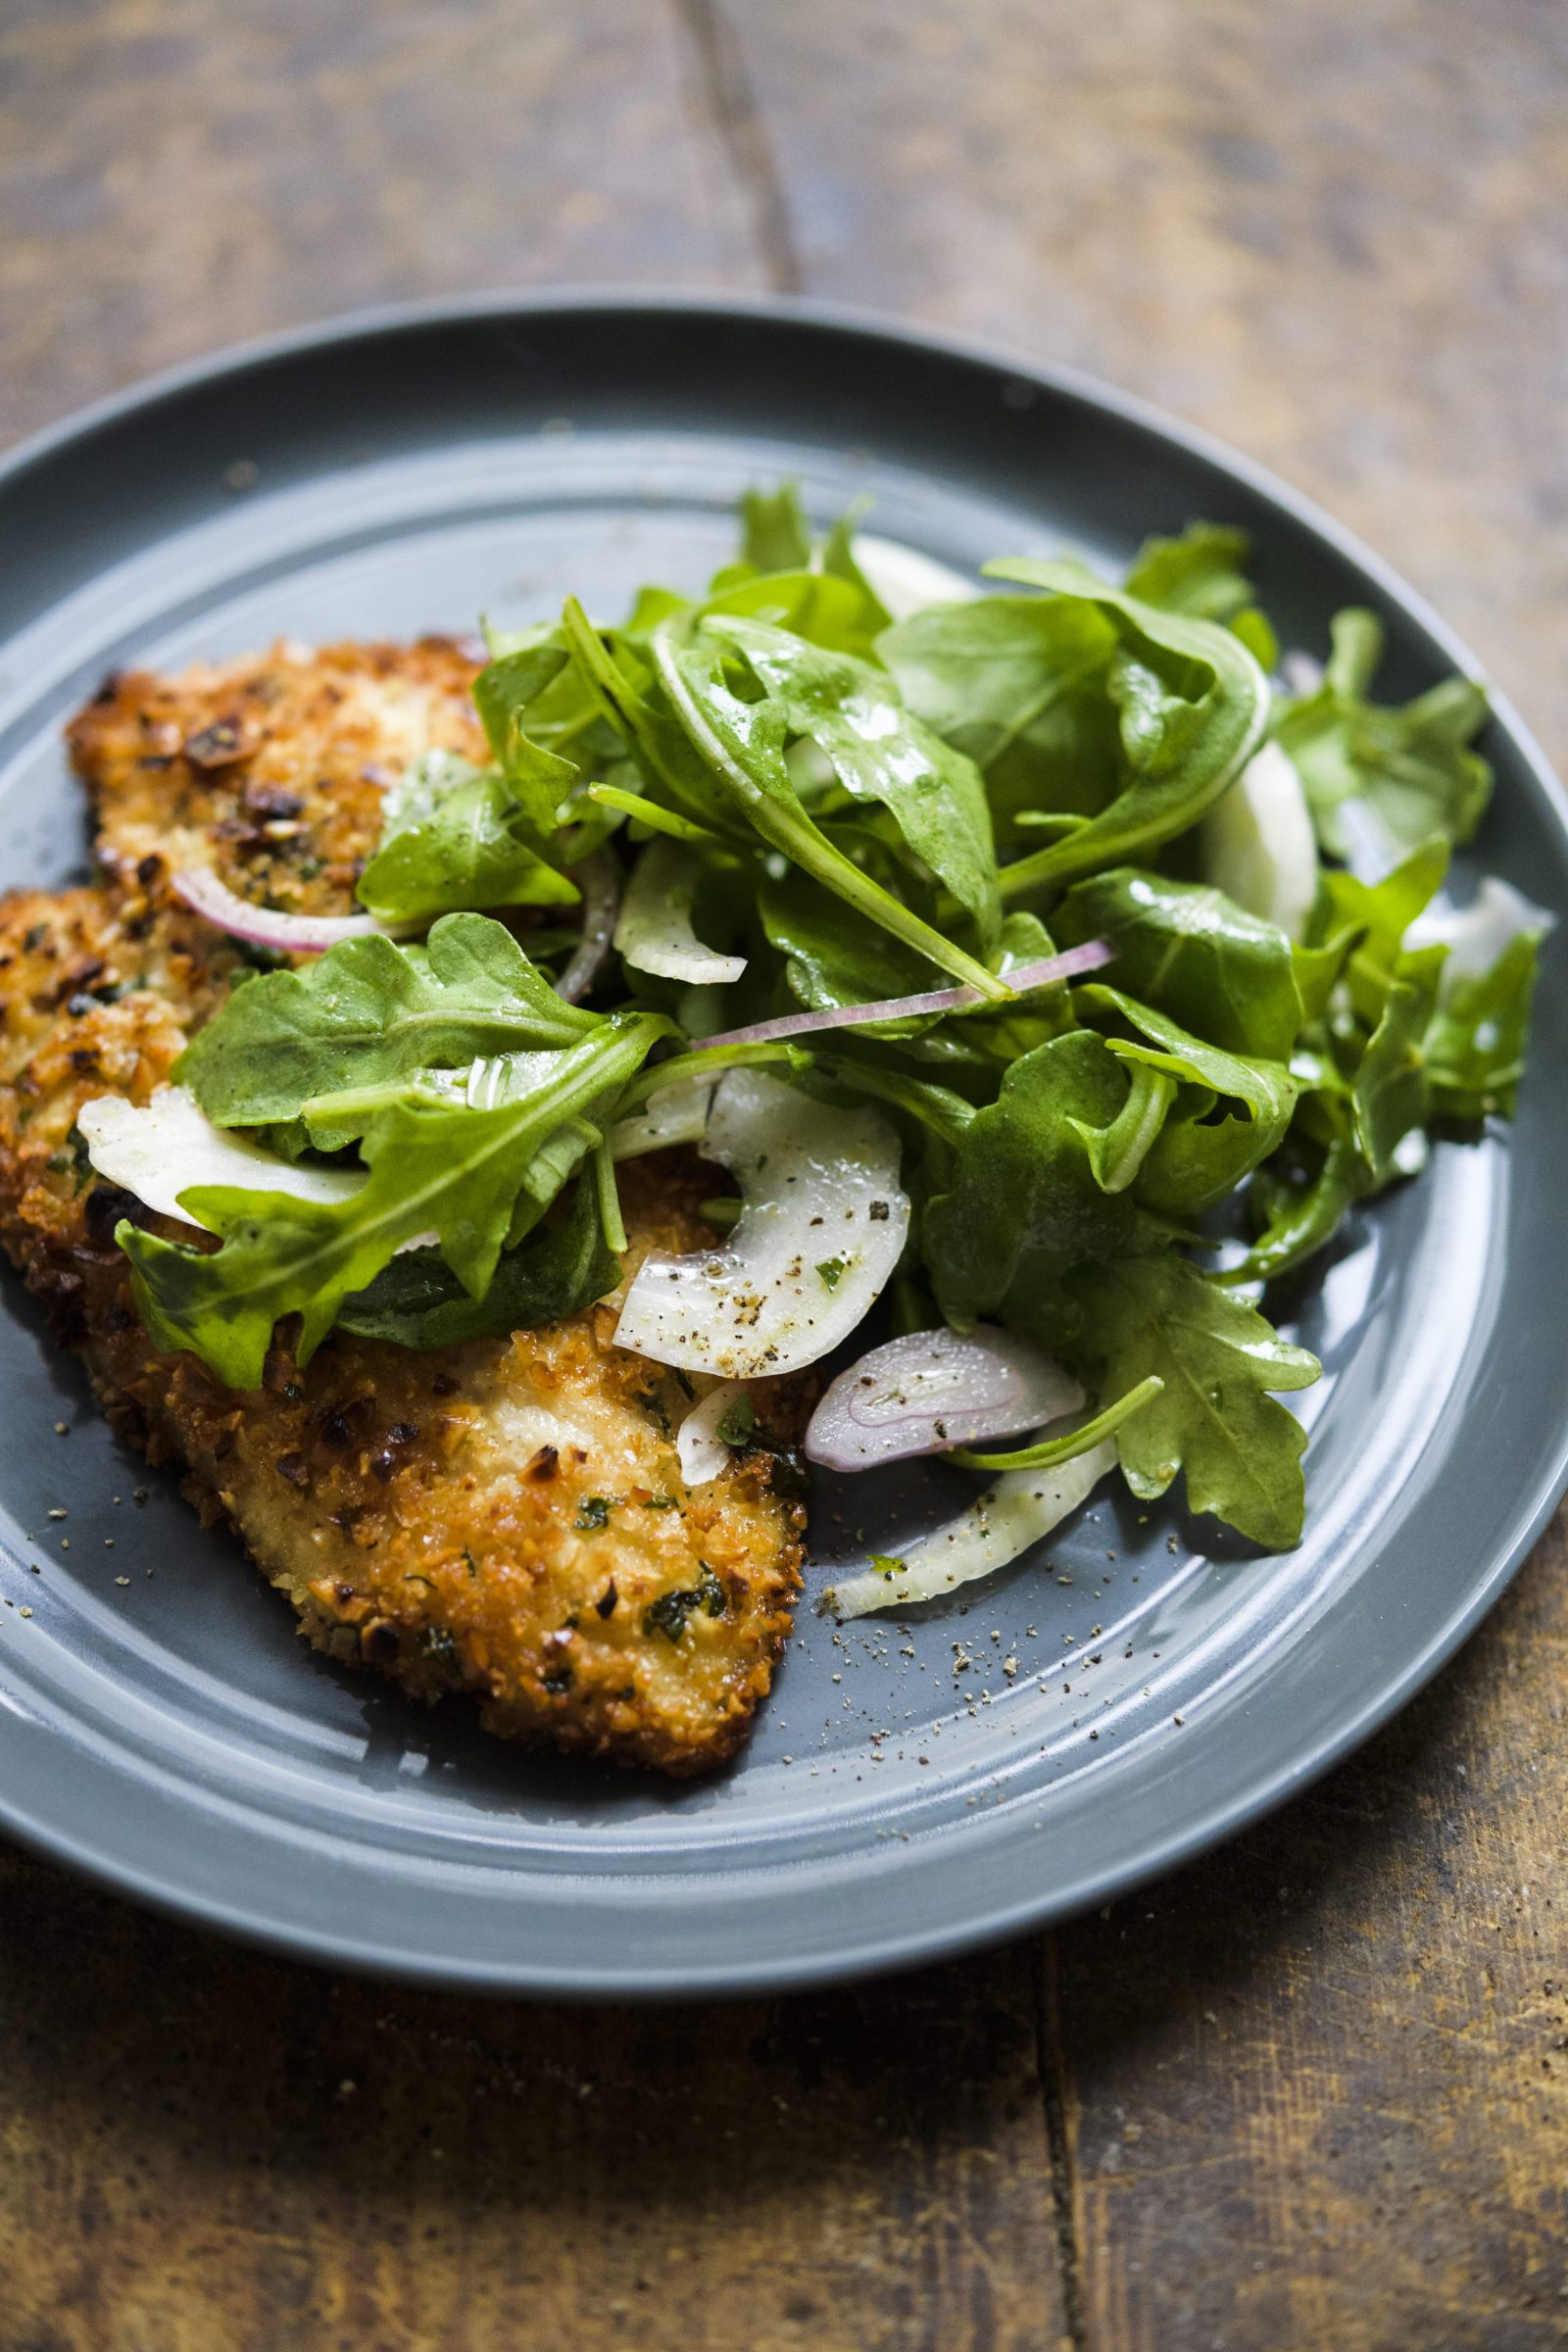 Hazelnut-Crusted Chicken Cutlets with Arugula and Fennel Salad